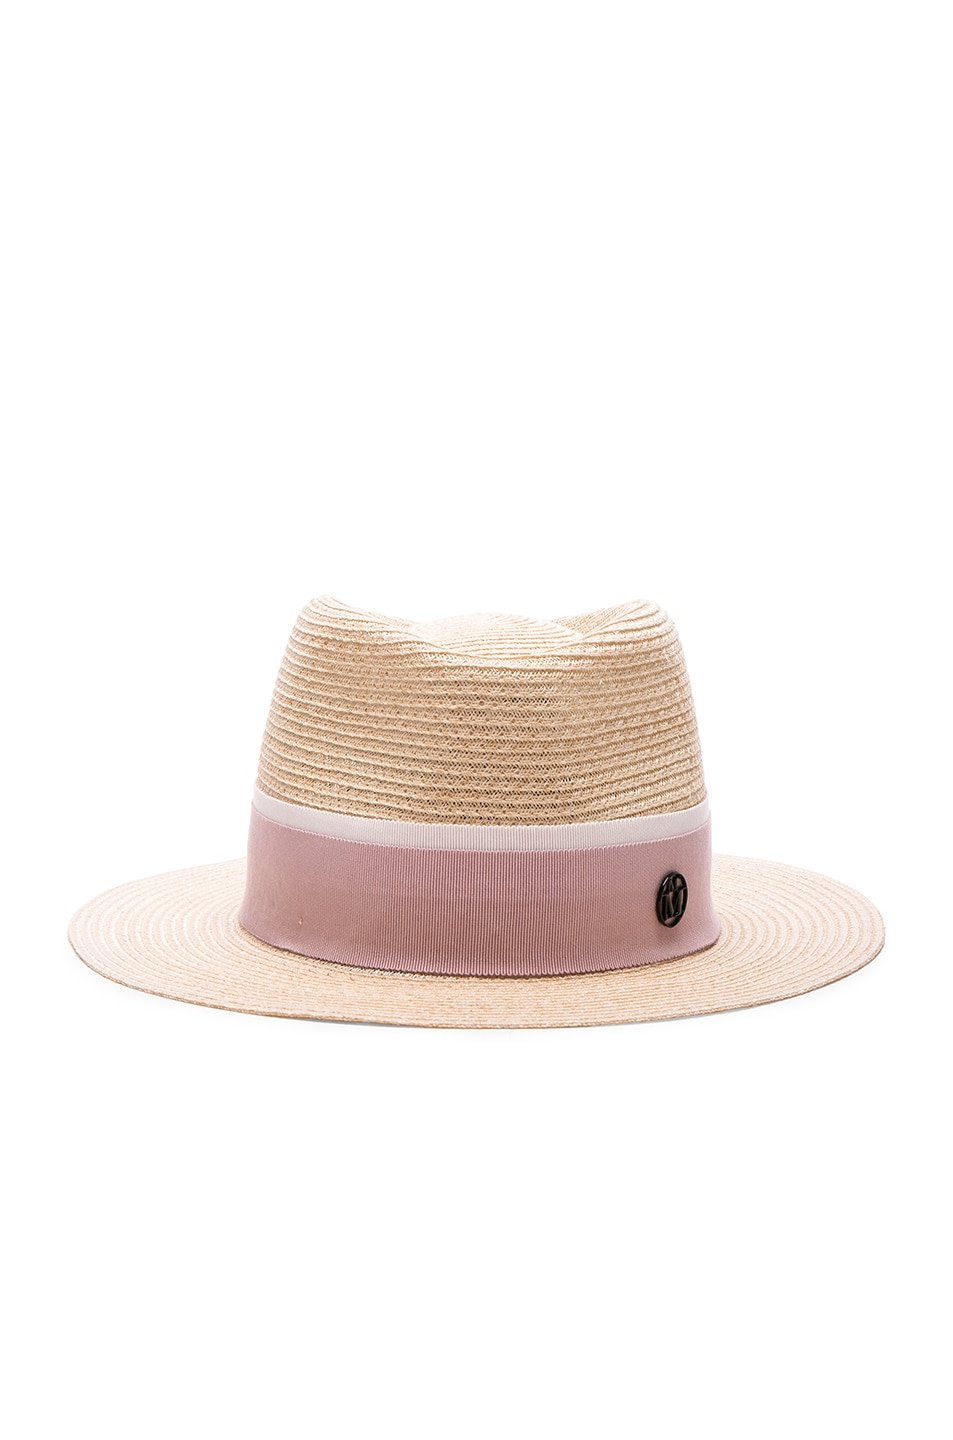 Image 1 of Maison Michel Andre Hat in Natural Rose